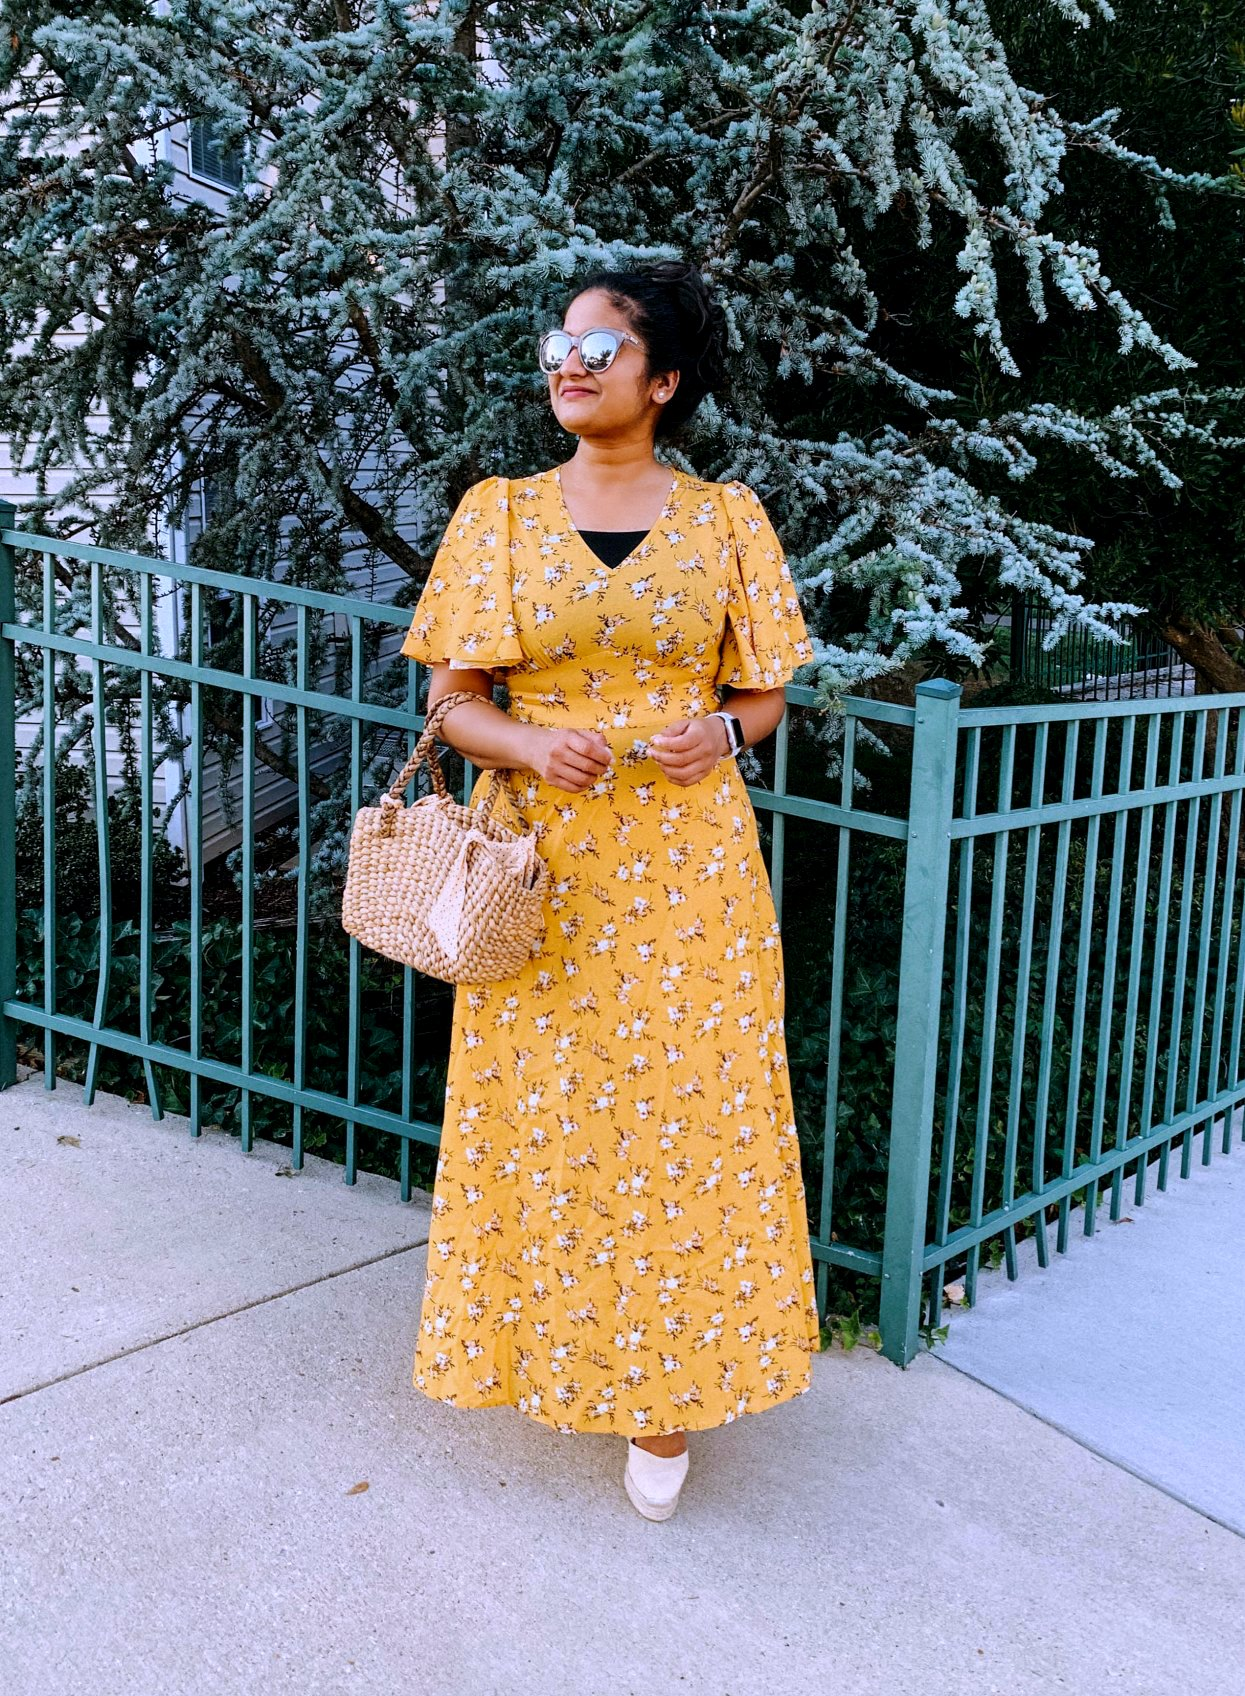 SheIn Floral Flutter Sleeve Dress Under $20 styled by top US modest fashion blog, Dreaming Loud: image of a woman wearing a SheIn Flora flutter sleeve dress, Castaner wedge espadrilles, American Eagle bralette, wicker straw tote from Amazon, Le Specs sunglasses.